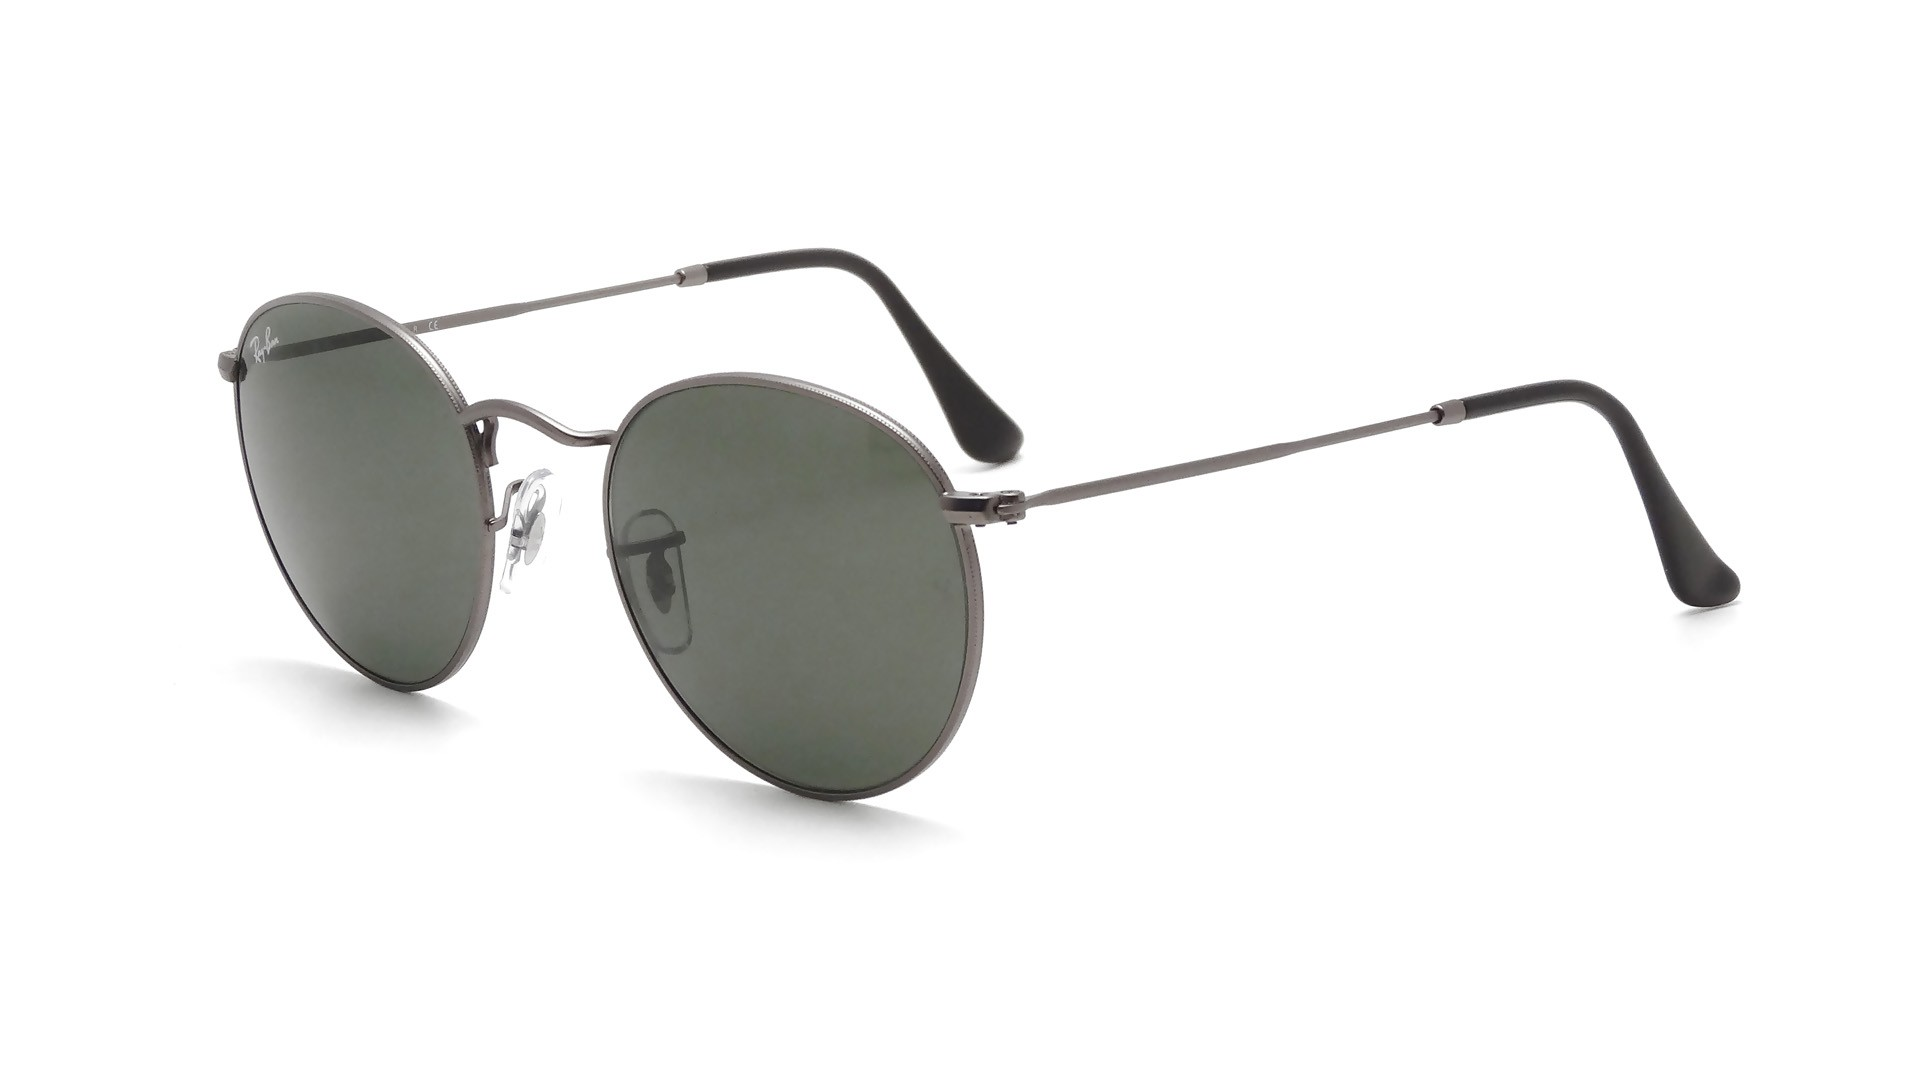 ddc7b050299 Sunglasses Ray-Ban Round Metal Grey G15 RB3447 029 50-21 Medium